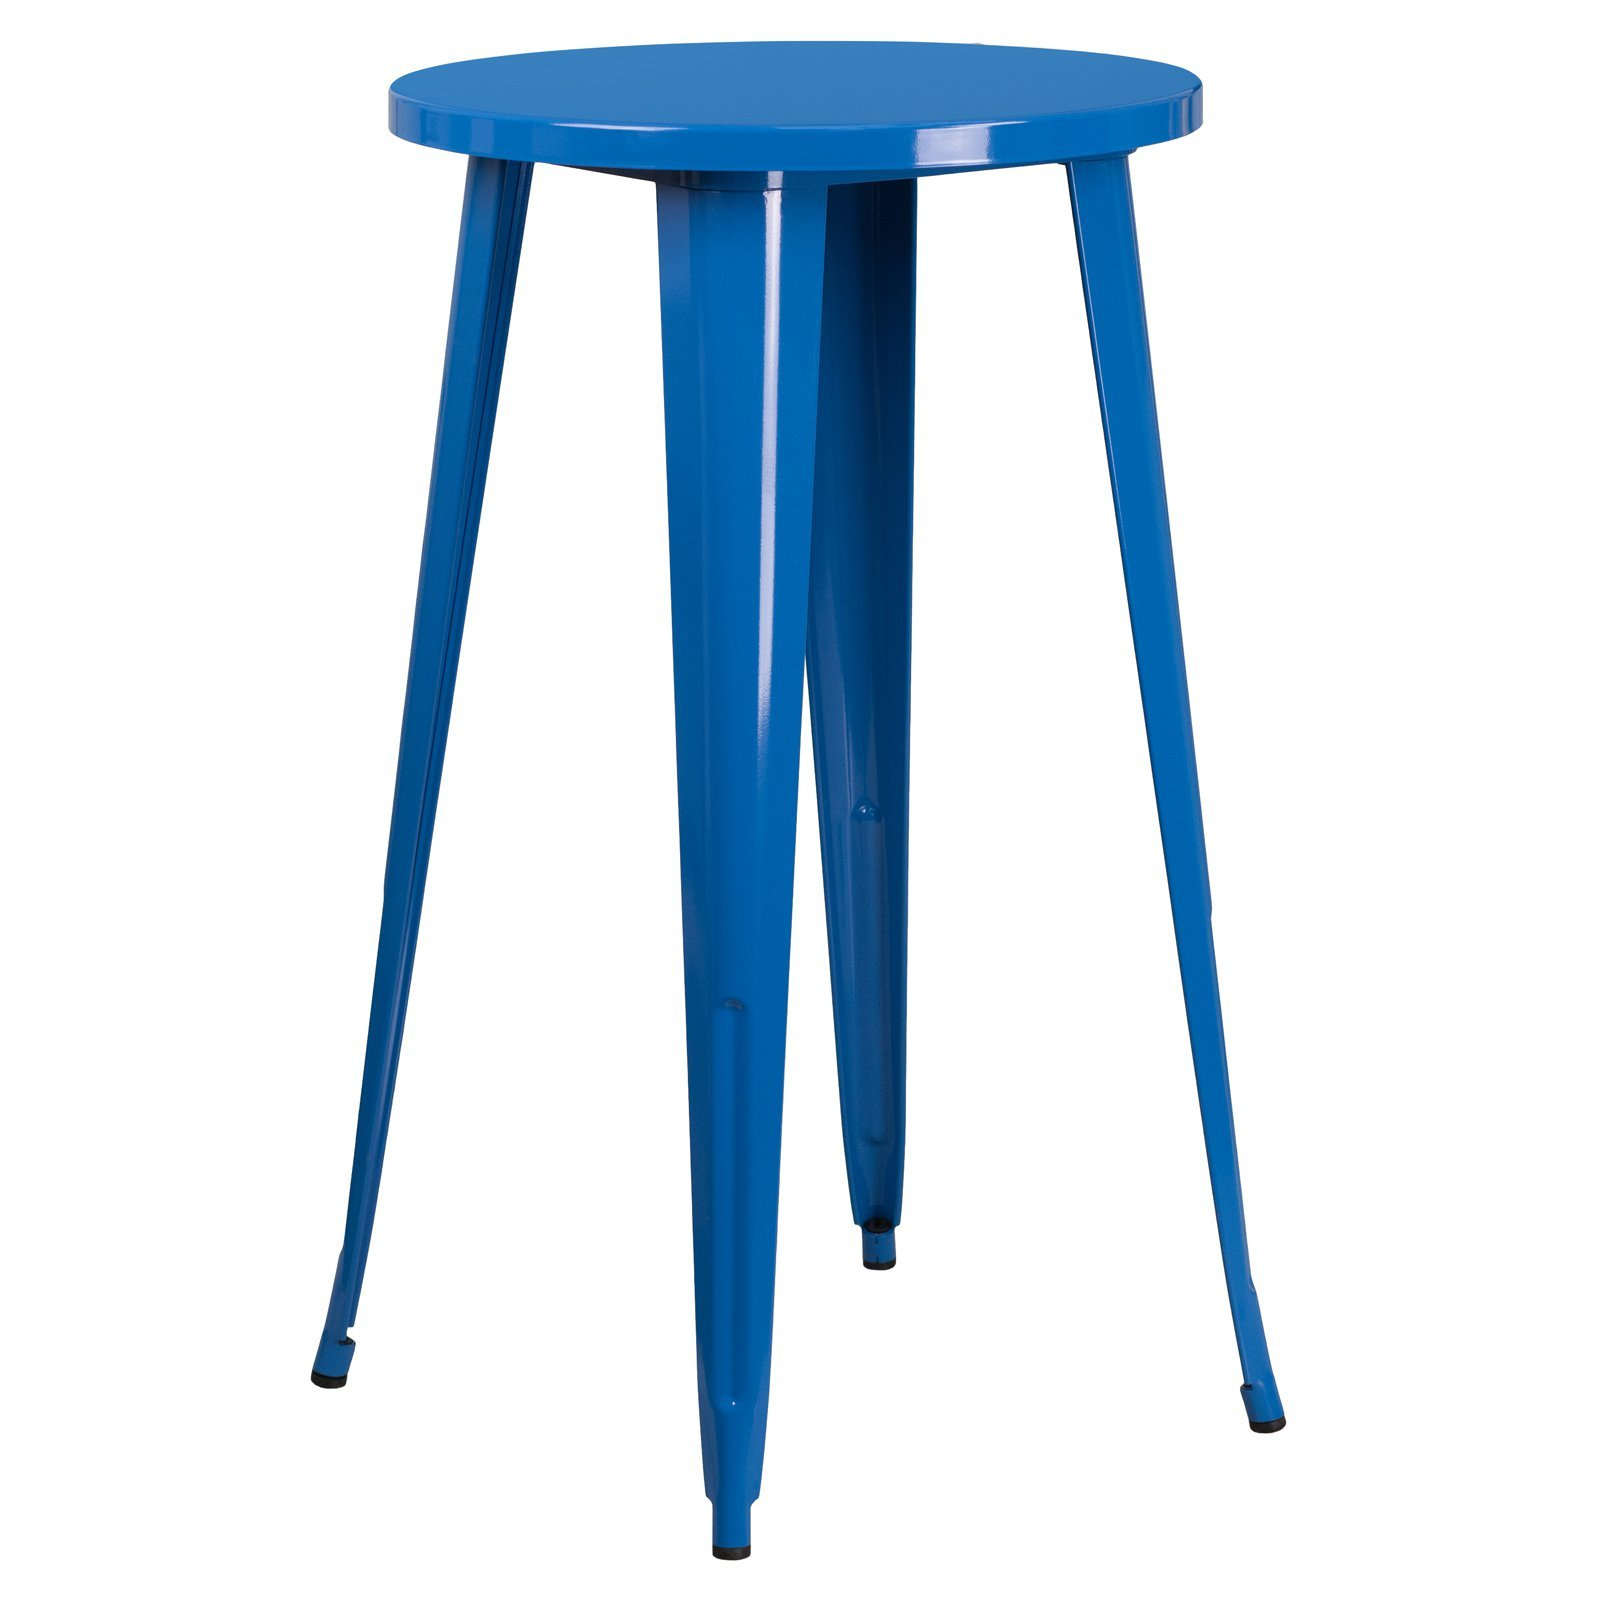 Basic Round Metal Indoor/Outdoor Bar Height Table with Protective Rubber Feet to Prevent Floor Damage, Thick Brace Underneath for Added Stability, Blue + Expert Home Guide by Love US